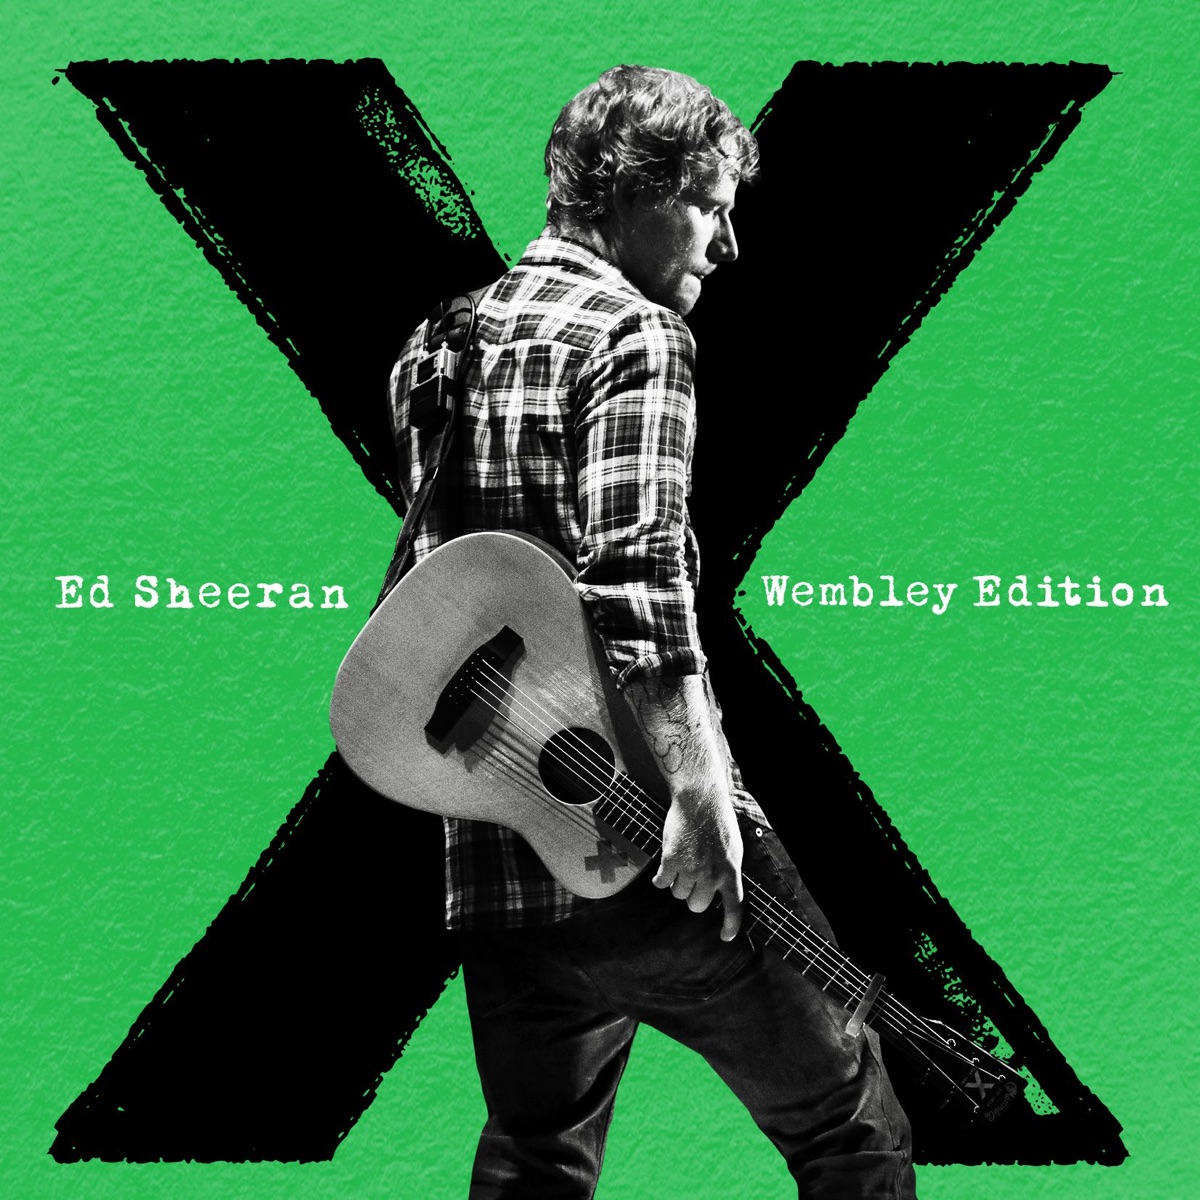 x Wembley Edition Ed Sheeran CD cover